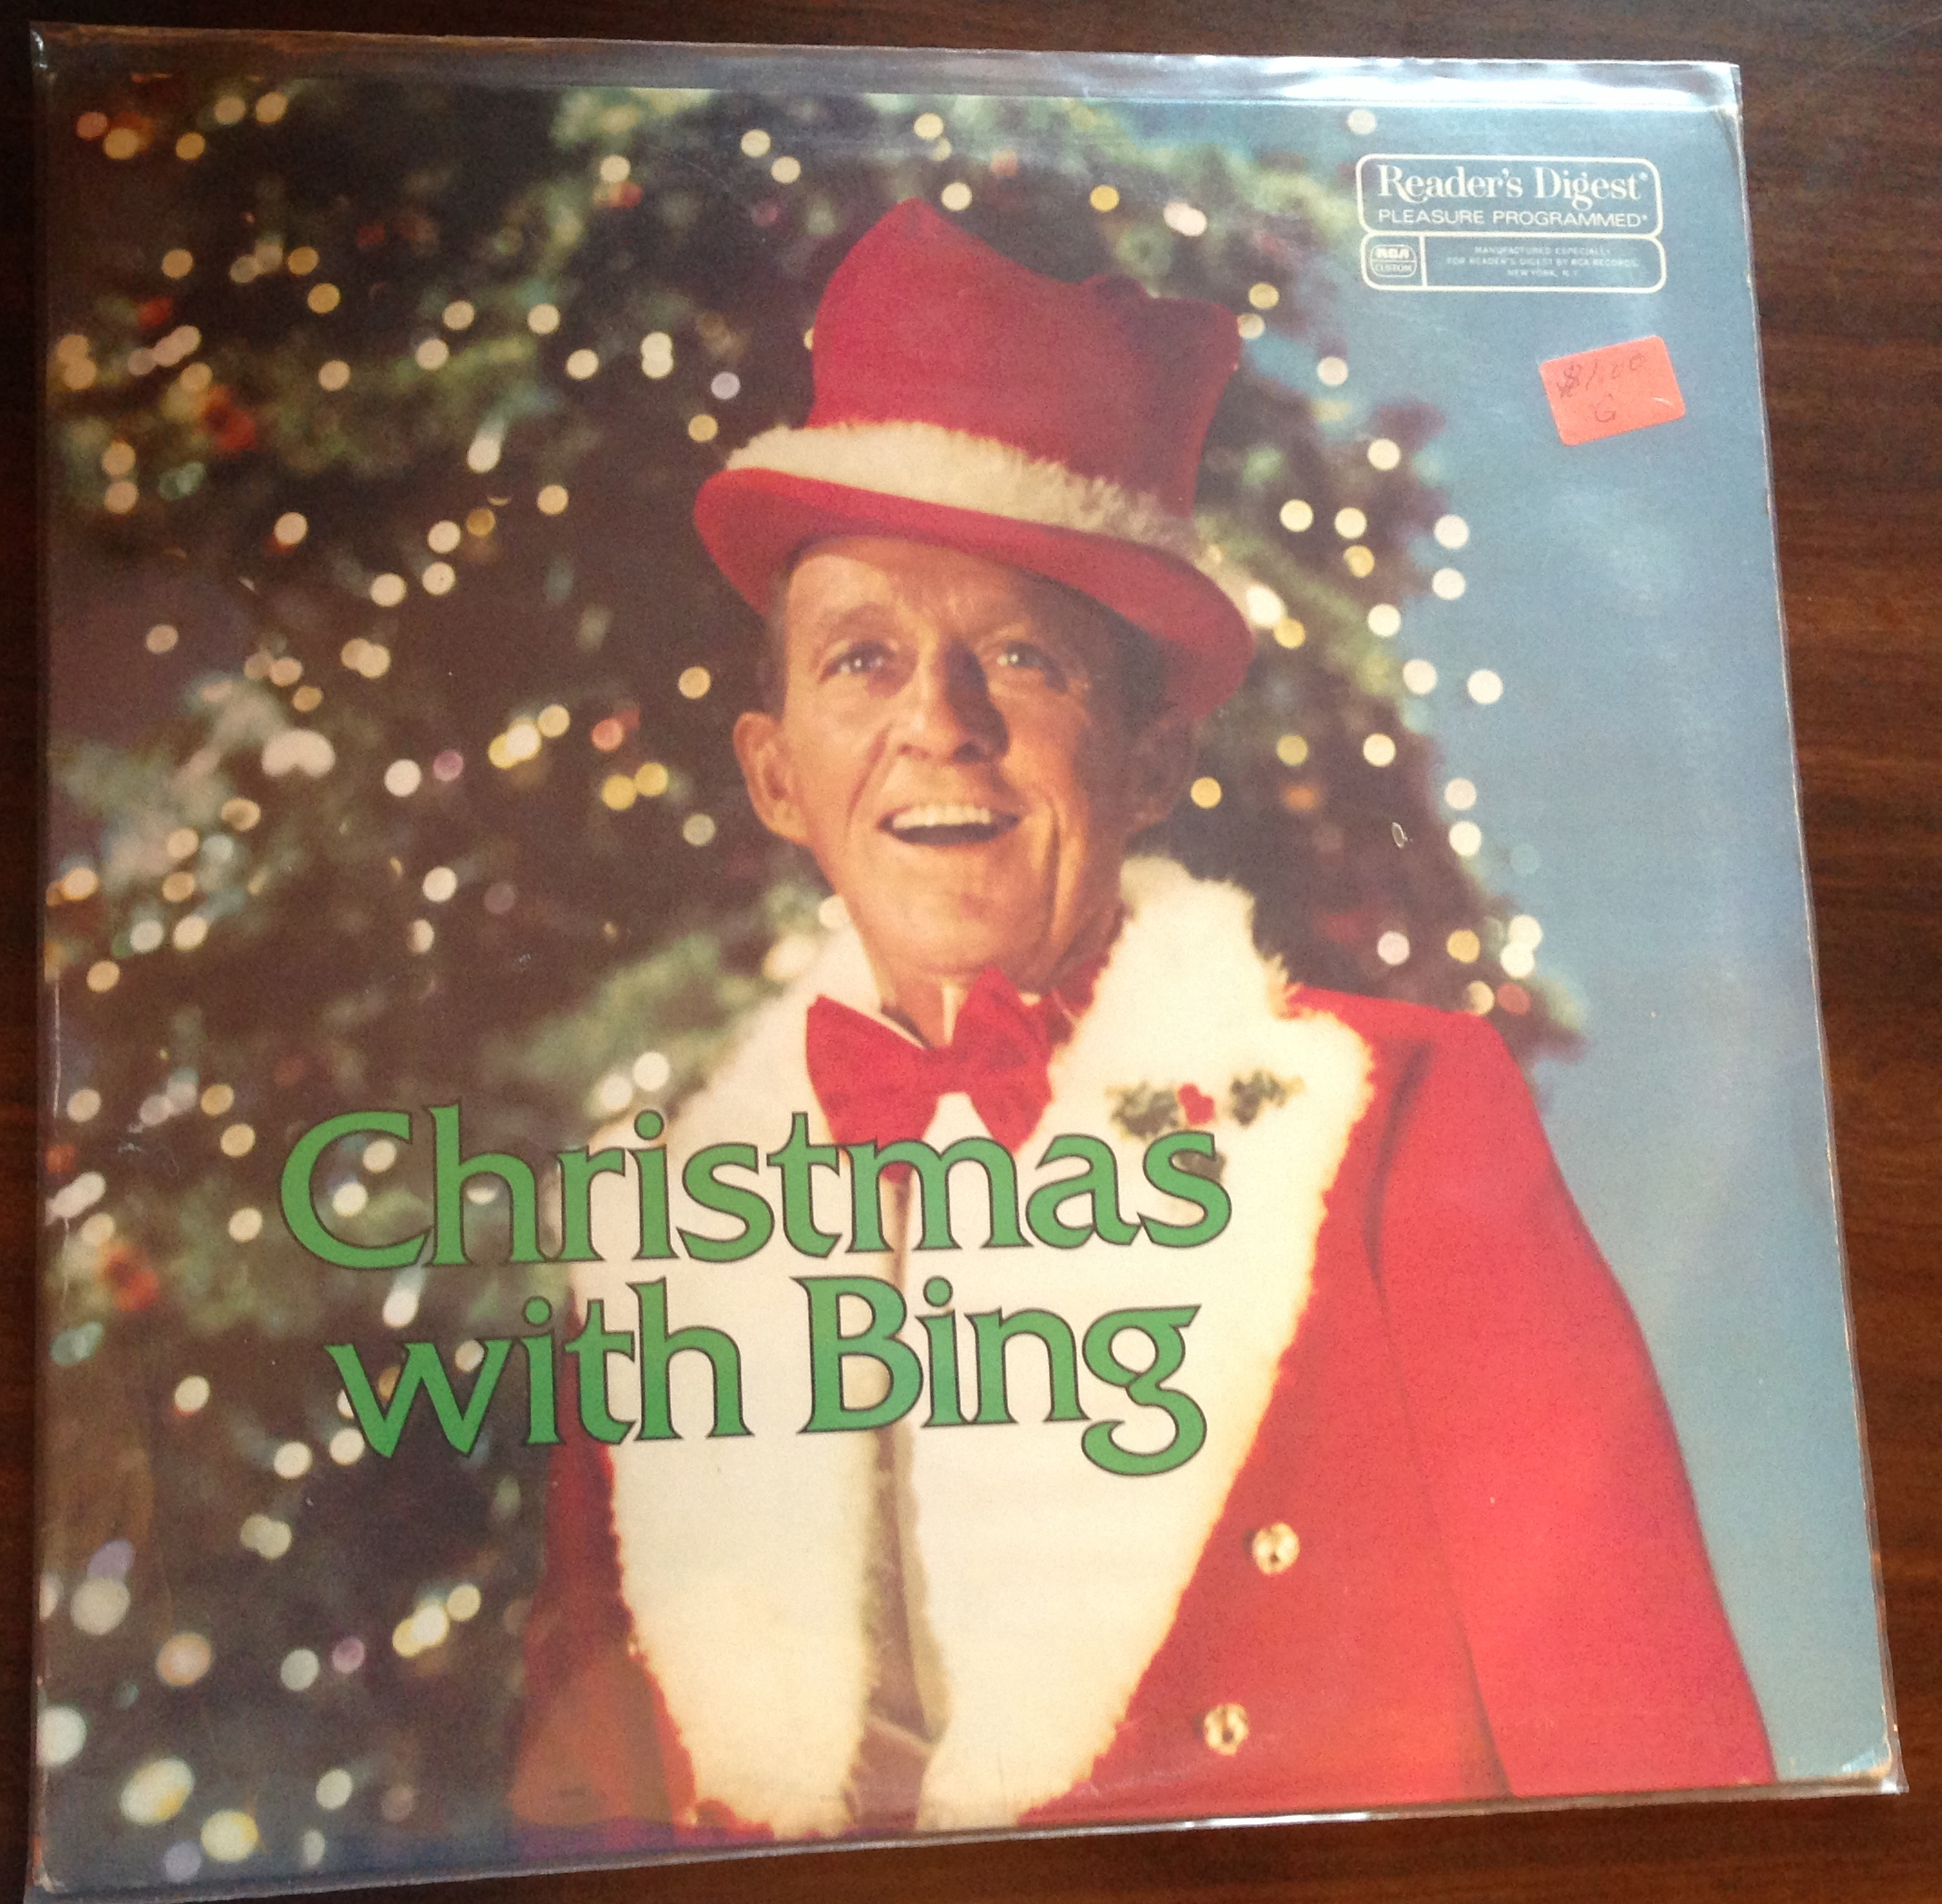 Bing Crosby Christmas Album.Christmas Album Review Christmas With Bing By Bing Crosby